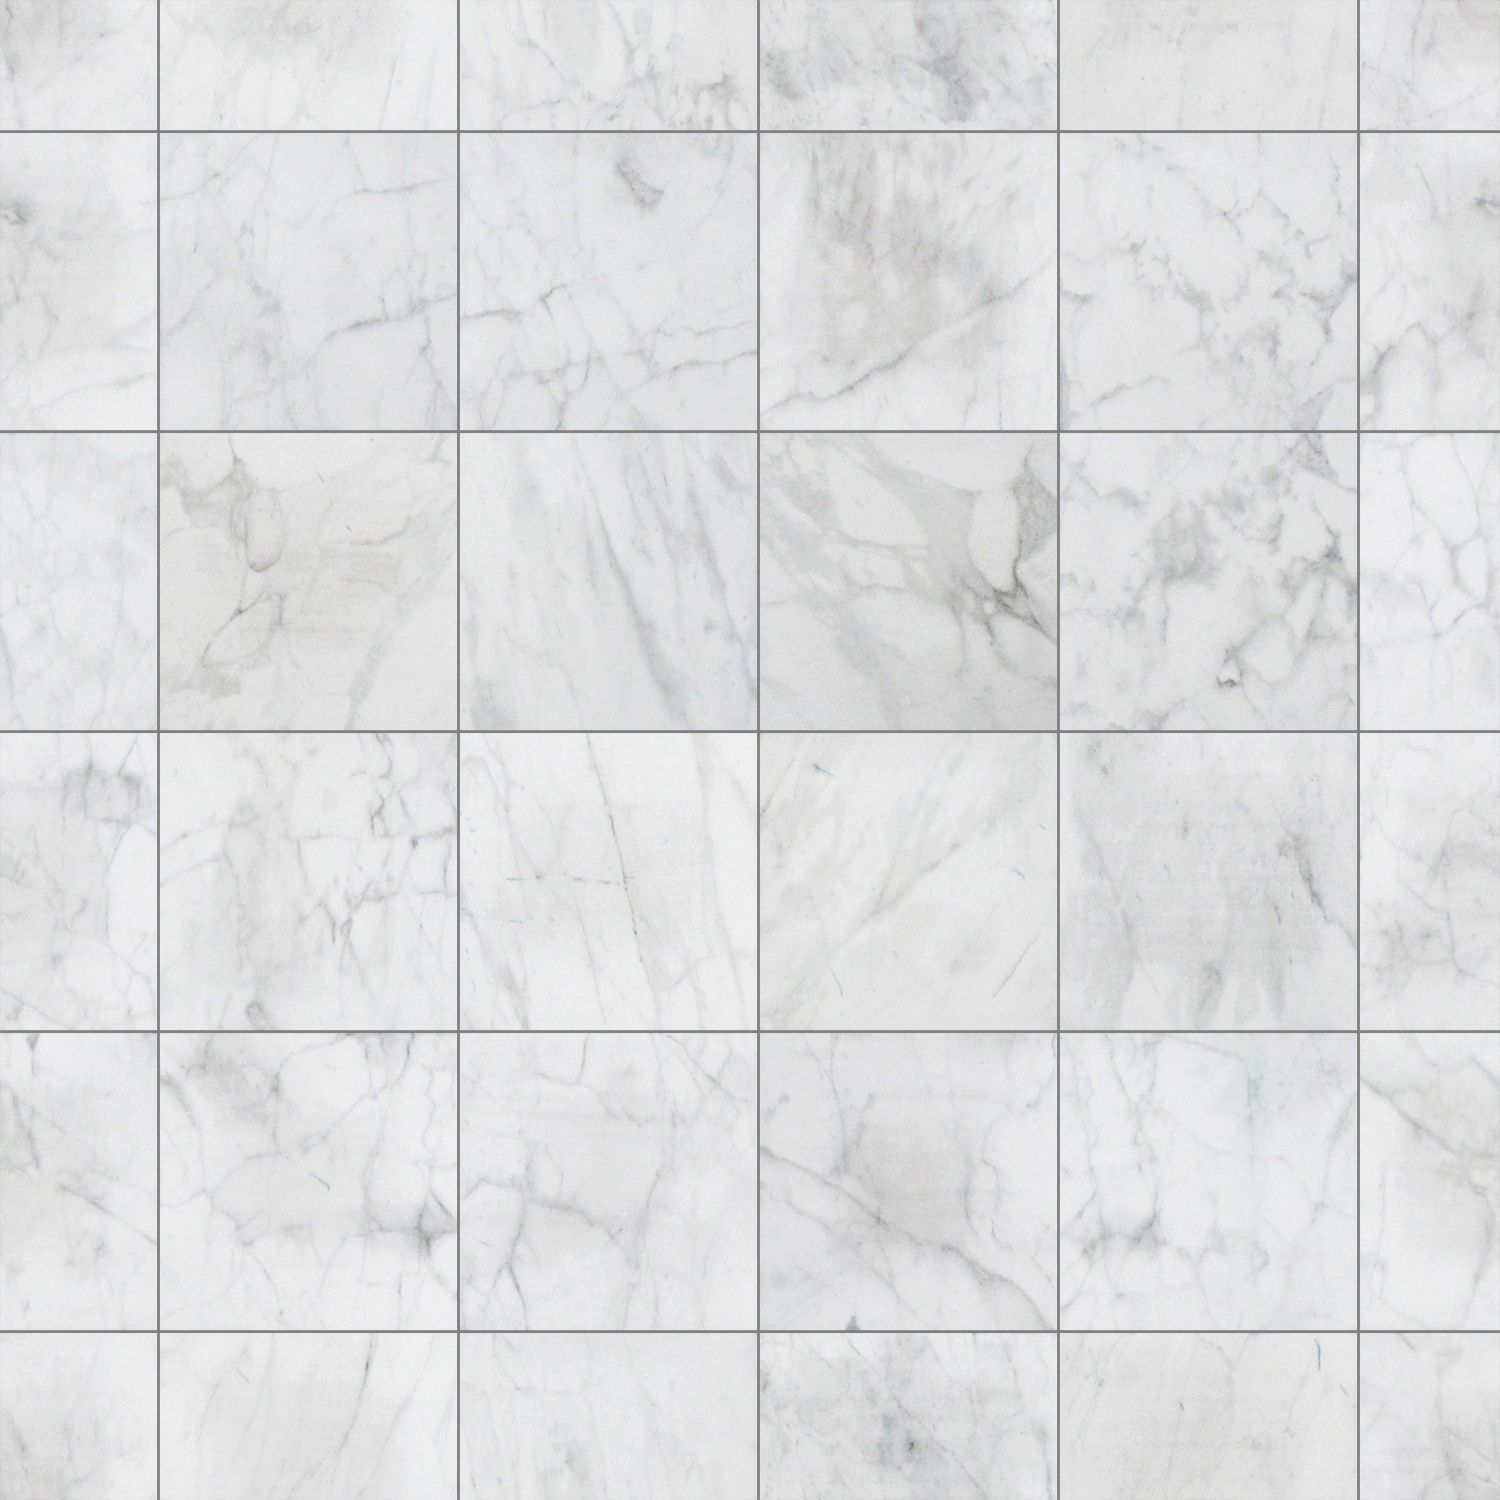 White Marble Tile Texturedownload Texture White Marble